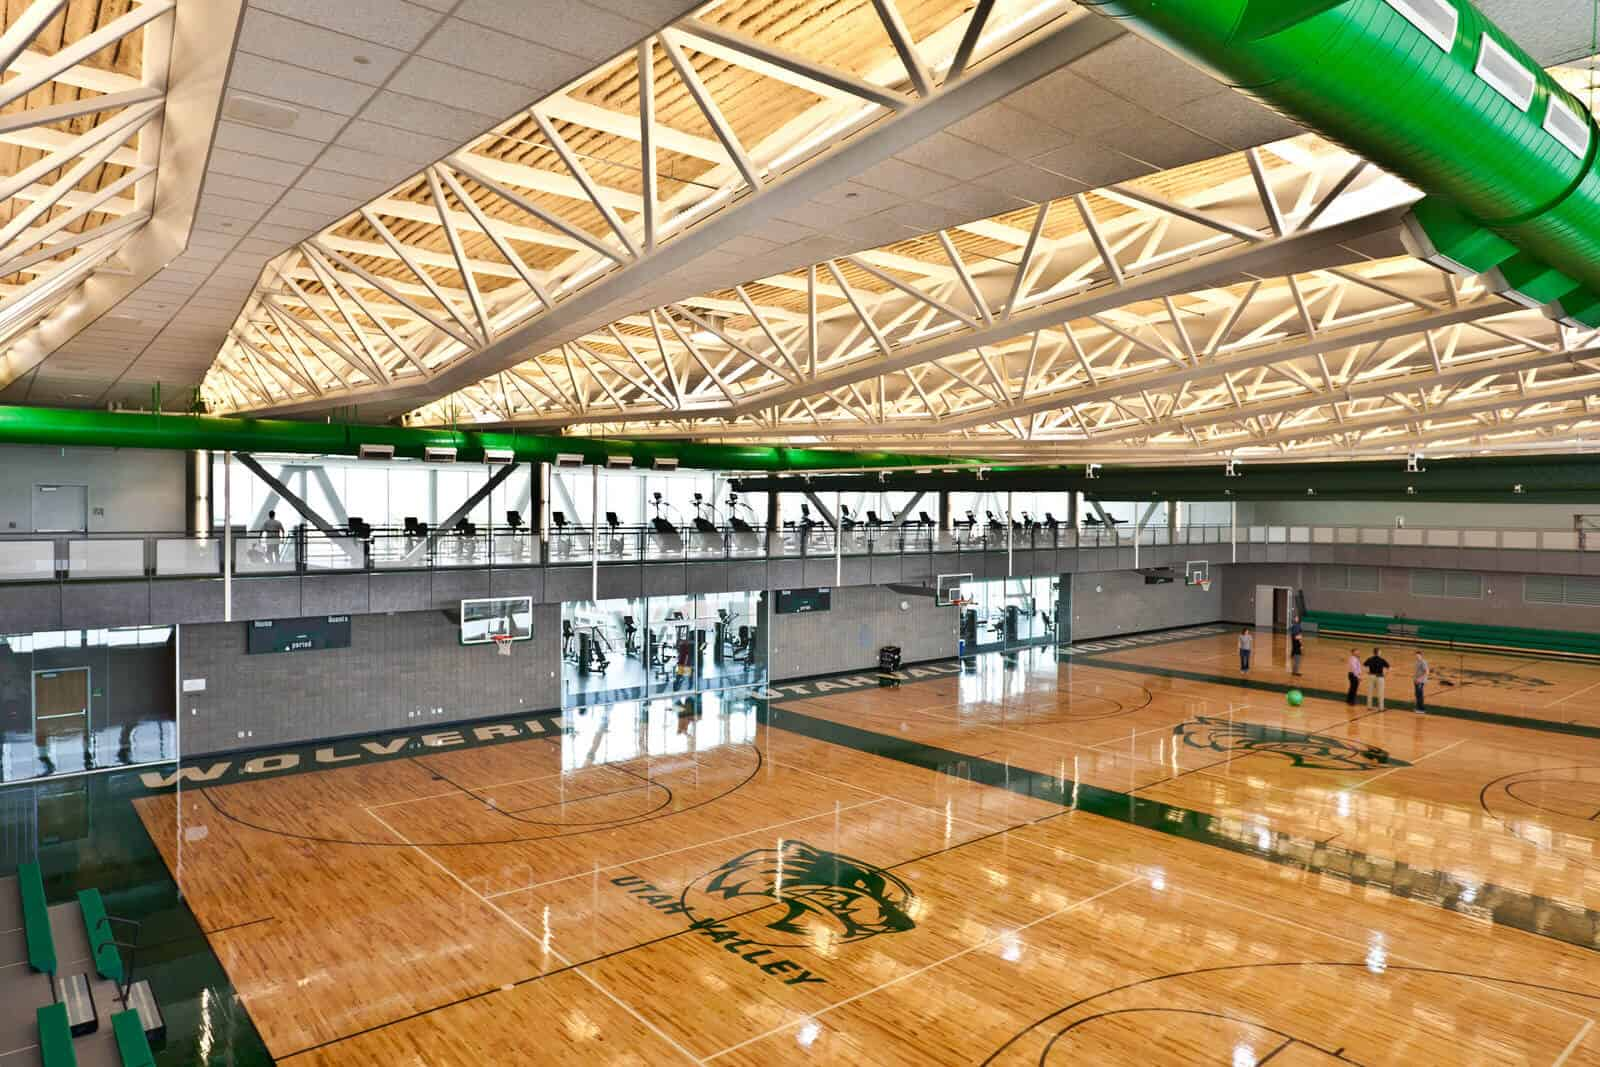 Utah Valley University: Student Life and Wellness Center